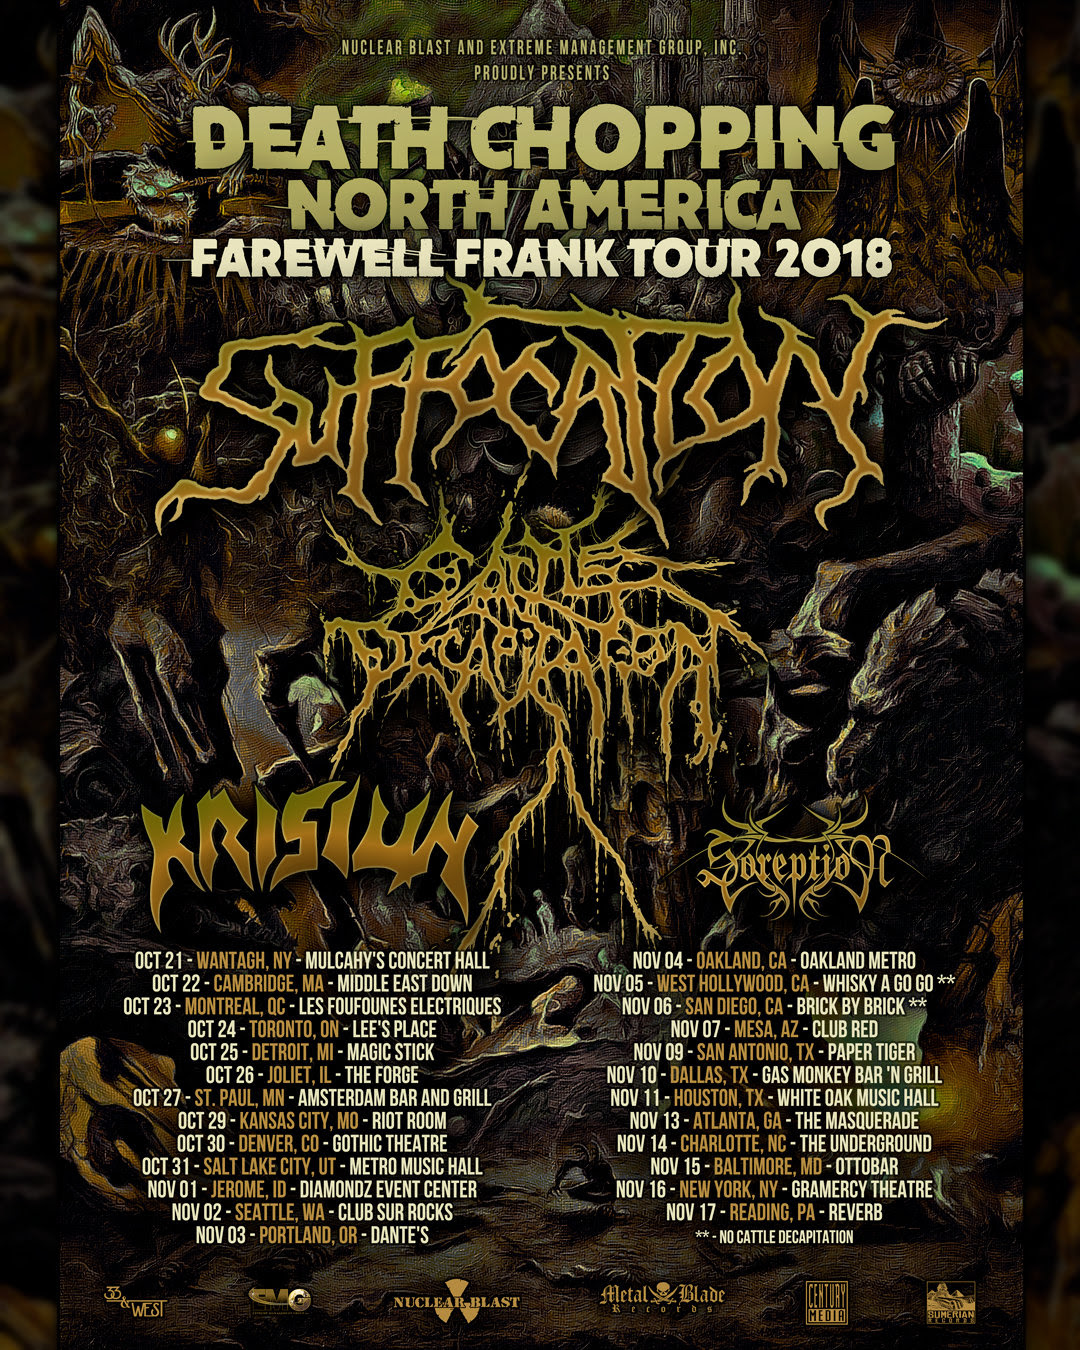 "New York death metal pioneers  SUFFOCATION  have announced dates for their final North American tour with original vocalist  Frank Mullen . This historic trek will take place this upcoming October / November and see the band joined by misanthropic gore grinders  CATTLE DECAPITATION , Brazilian death metal legends  KRISIUN , and Swedish tech-death sensations  SOREPTION .   Mullen  went on to  i ssue the following statement: ""Hello my friends -  so this is it, after 30 years of being a part of this amazing band, which I have had the opportunity to tour the world and bring our music to the sickest fans on the planet, it has come to this time - I bid you a farewell.  ""I would like to thank first and foremost, all of my brothers in  SUFFOCATION  who I have shared the stage with over the years. We have had the sickest of times on the road, and recorded some of the sickest fucking music the planet has ever heard. Secondly I want to thank ALL OUR FANS AND FRIENDS WORLDWIDE, who have helped make this journey possible by supporting us unconditionally. None of this would have been possible without you. So in closing, I will miss you all. This has been the craziest ride of my life and I would not change a thing! Until we meet up again take care, stay brutal and I look forward to the next chapter.  ""But before I take my final step off the stage, to give back to all of you who have supported, me and the boys are going to head out on the DEATH CHOPPING NORTH AMERICA tour. Along with some insane support acts including  CATTLE DECAPITATION ,  KRISIUN , and  SOREPTION ! I hope to see you all for one last ride across North America. Stay brutal.""   Tickets go on sale everywhere Friday, August 10th via  www.suffocationofficial.com . Confirmed dates are as follows:   SUFFOCATION ,  CATTLE DECAPITATION ,  KRISIUN ,  SOREPTION  10.21: Wantagh, NY @ Mulcahy's Concert Hall 10.22: Cambridge, MA @ Middle East Down 10.23: Montreal, QC @ Les Foufounes Electriques 10.24: Toronto, ON @ Lee's Place 10.25: Detroit, MI @ Magic Stick 10.26: Joliet, IL @ The Forge 10.27: St. Paul, MN @ Amsterdam Bar and Grill 10.29: Kansas City, MO @ Riot Room 10.30: Denver, CO @ Gothic Theatre 10.31: Salt Lake City, UT @ Metro Music Hall 11.01: Jerome, ID @ Diamondz Event Center 11.02: Seattle, WA @ Club Sur Rocks 11.03: Portland, OR @ Dante's 11.04: Oakland, CA @ Oakland Metro 11.05: West Hollywood, CA @ Whisky A Go Go ** 11.06: San Diego, CA @ Brick By Brick ** 11.07: Mesa, AZ @ Club Red 11.09: San Antonio, TX @ Paper Tiger 11.10: Dallas, TX @ Gas Monkey Bar 'N Grill 11.11: Houston, TX @ White Oak Music Hall 11.13: Atlanta, GA @ The Masquerade 11.14: Charlotte, NC @ The Underground 11.15: Baltimore, MD @ Ottobar 11.16: New York, NY @ Gramercy Theatre 11.17: Reading, PA @ Reverb ** - No Cattle Decapitation   SUFFOCATION  's  latest album   ...Of The Dark Light     was produced by  SUFFOCATION  and tracked at  Full Force Studios  with longtime engineer  Joe Cincotta  ( OBITUARY ). Mixing and mastering was handled by world renowned producer/engineer  Zeuss  ( HATEBREED ,  ARSIS ,  SUICIDE   SILENCE ).   Cover artwork was created by Colin Marks  ( ORIGIN ,  FLESHGOD APOCALYPSE ,  KATAKLYSM ).    More on   ...Of The Dark Light  : ""Return To The Abyss"" lyric video  https://youtu.be/iiSvg6SVZvs  ""Your Last Breaths"" 360º track video  http://www.suffocationofficial.com  ""Your Last Breaths"" drum play-through  https://youtu.be/SDsJzWieSlw  ""Return to the Abyss"" guitar play-through  https://www.guitarworld.com/artists/suffocation-premiere-return-to-the-abyss-playthrough-video  1st album trailer  https://youtu.be/Q_397KEEp4Q  2nd album trailer  https://youtu.be/5TuYnHLXjPA"